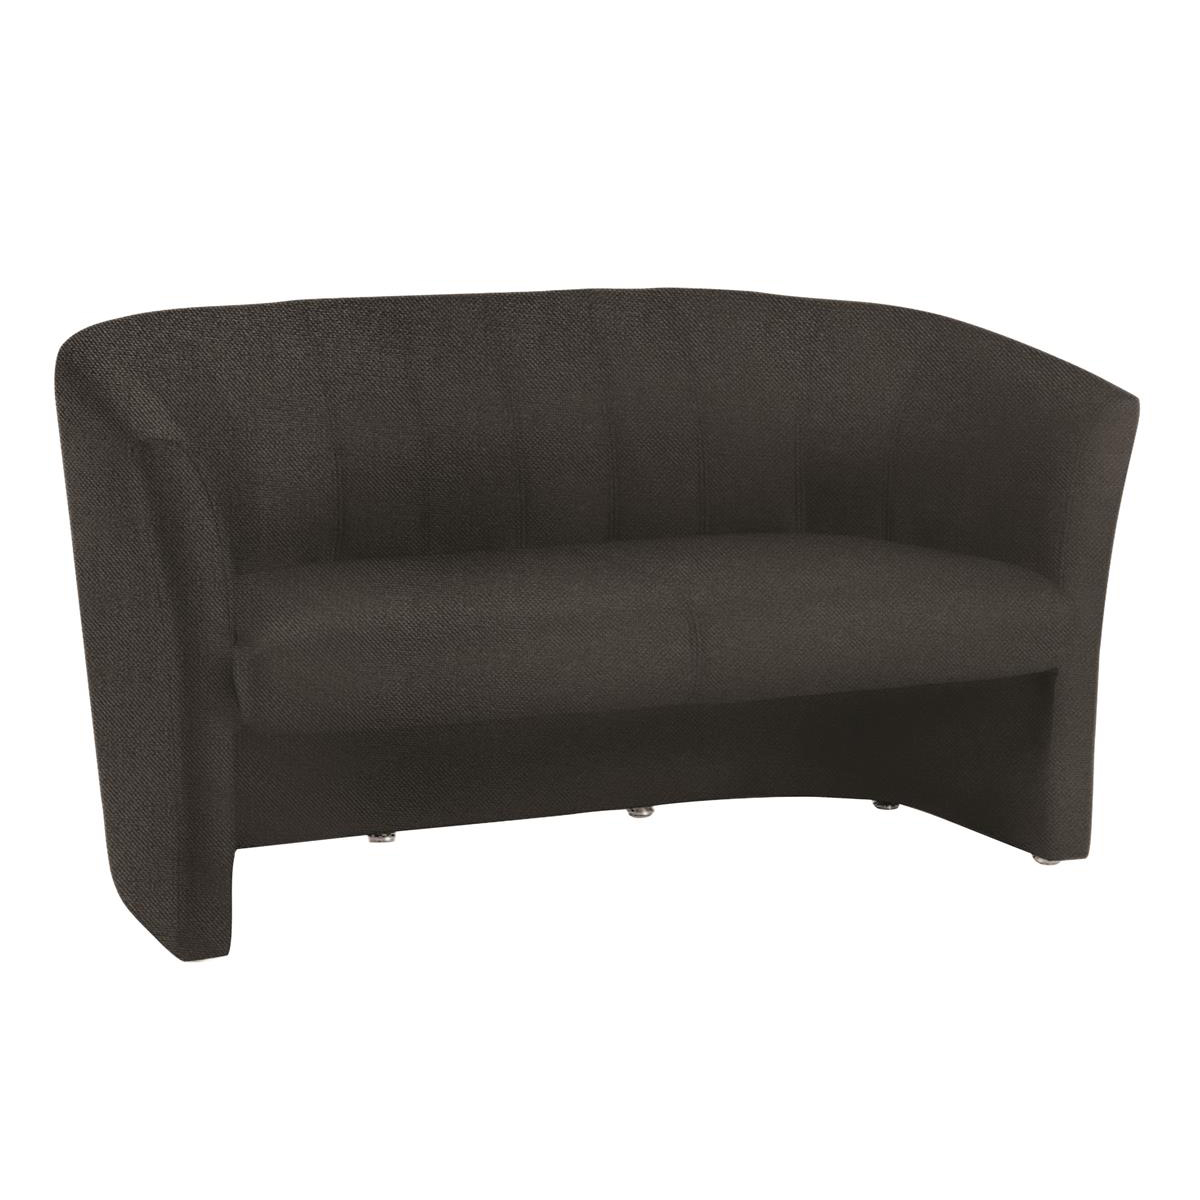 #Trexus Tub 2 Seater Sofa Black 970x510x460mm Ref BR000106